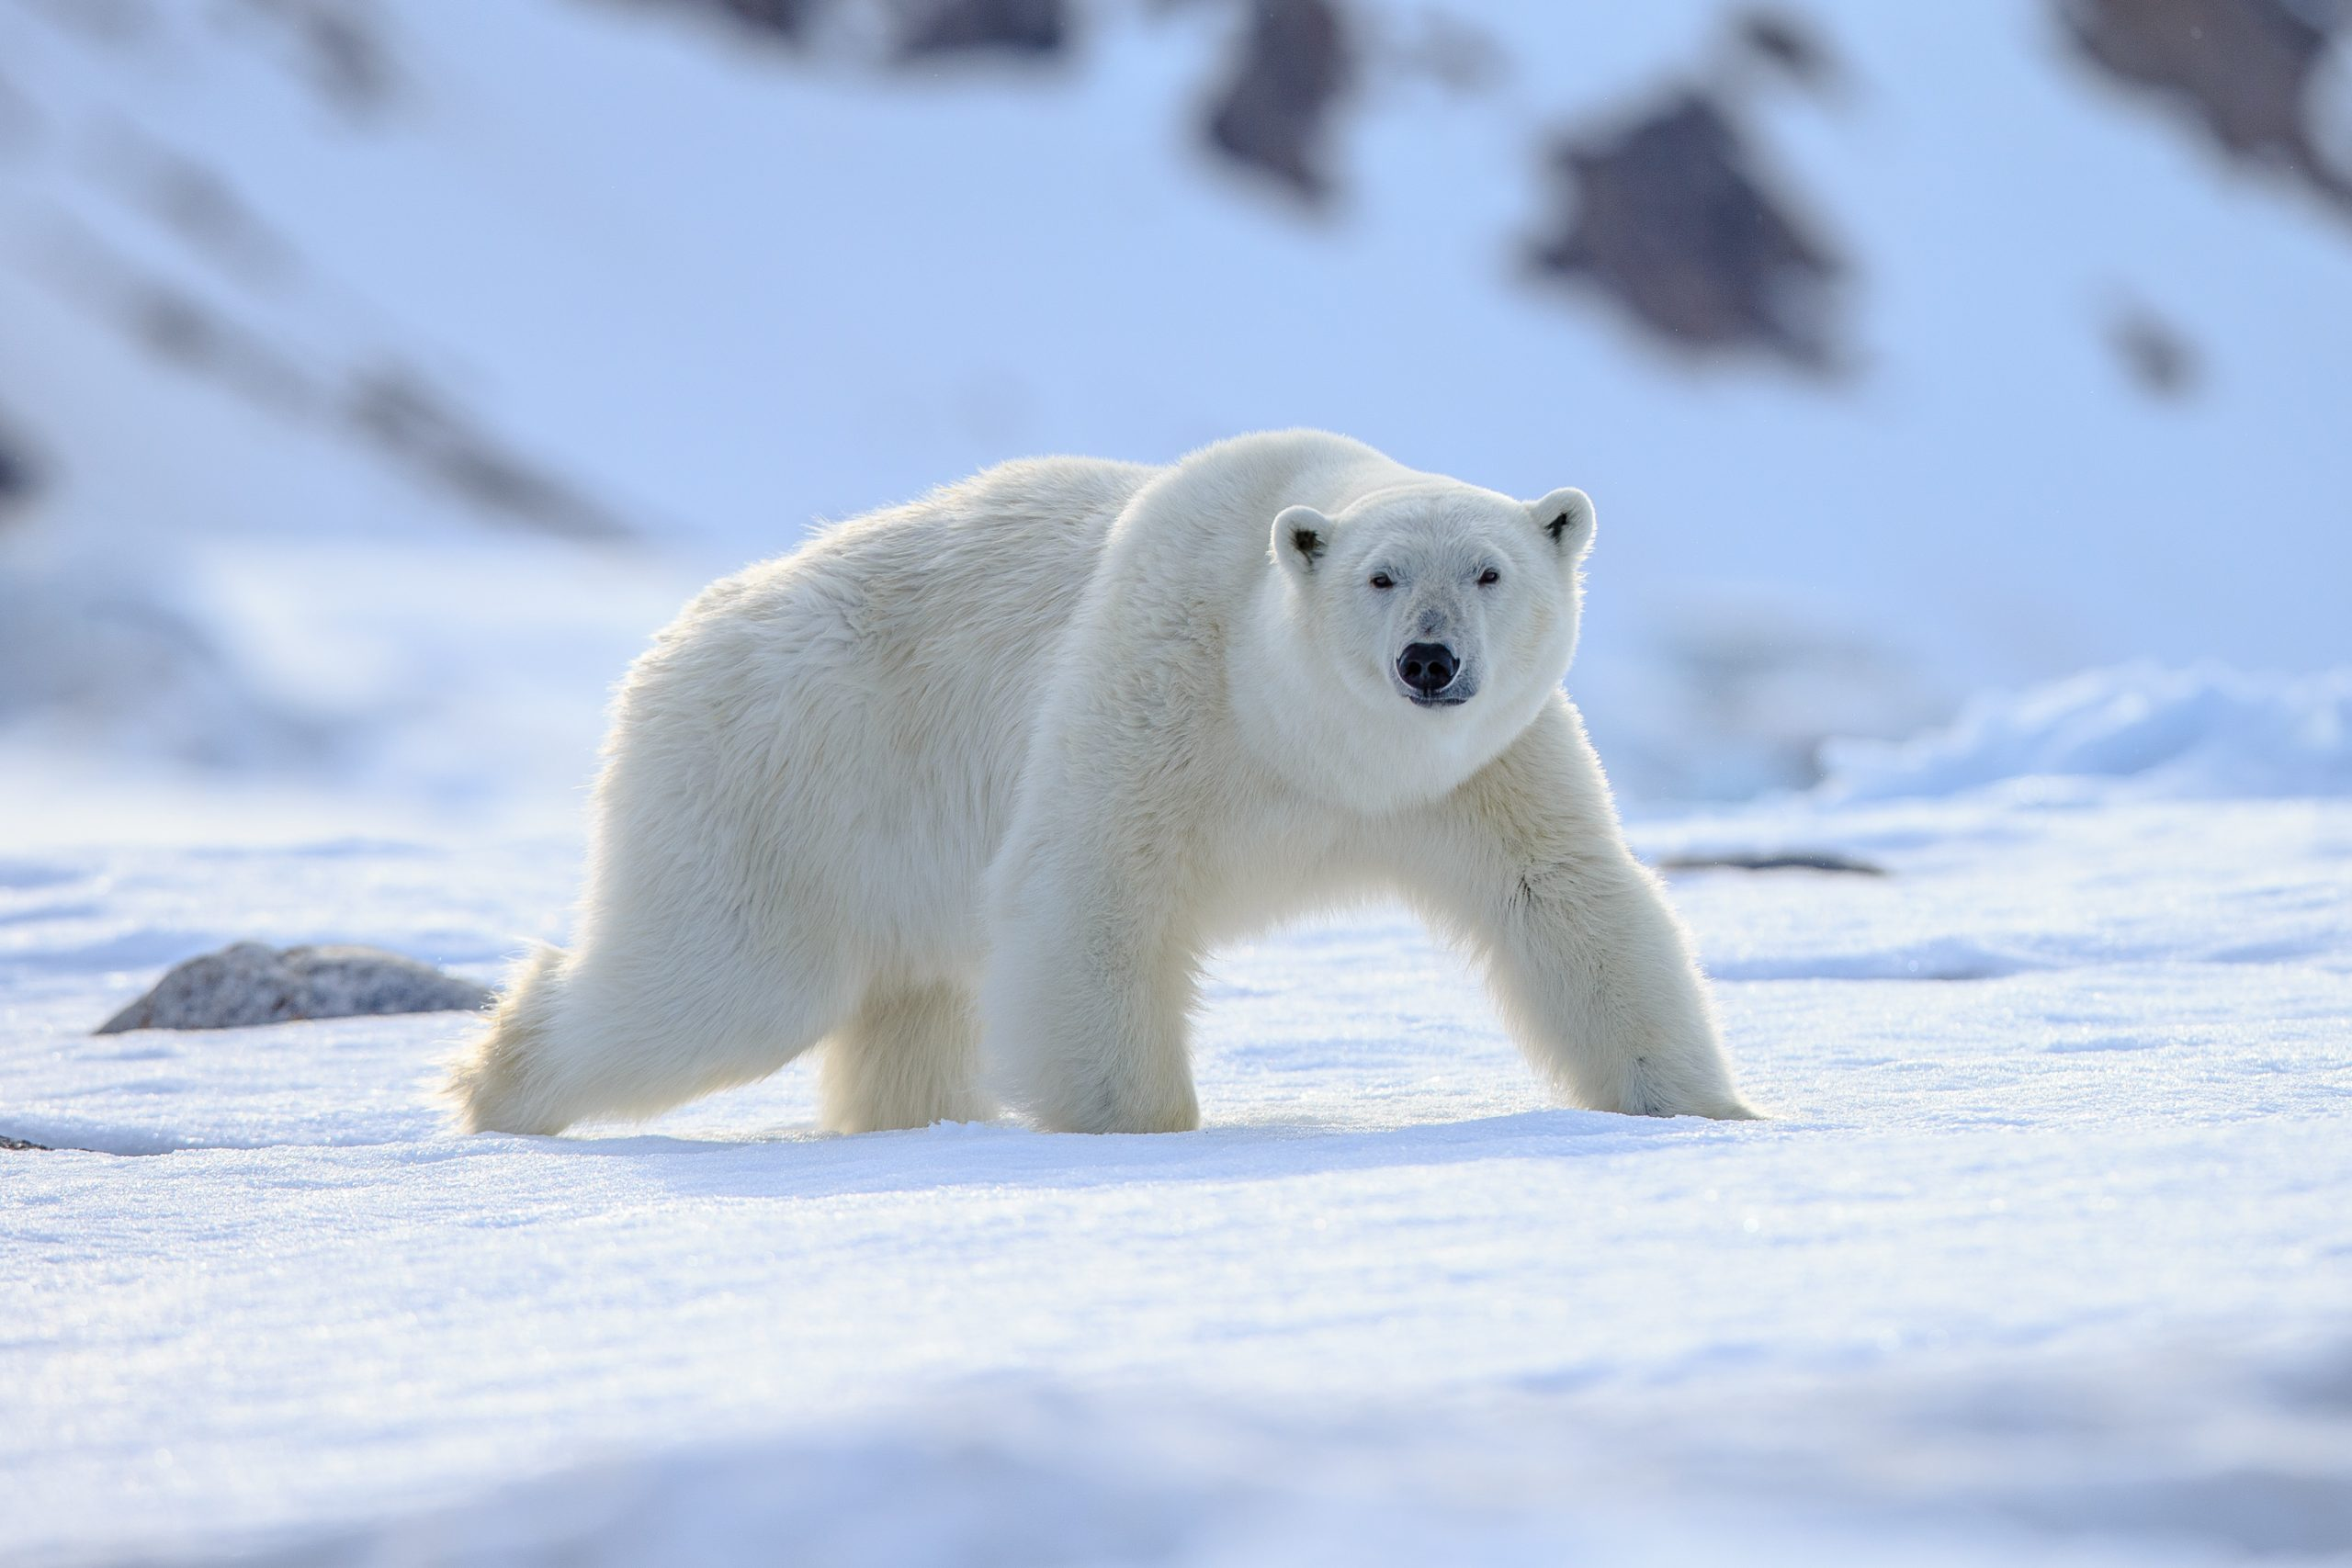 Petition: Polar Bears in Danger of Being Buried Alive as their Dens Go Undetected During Oil Drilling